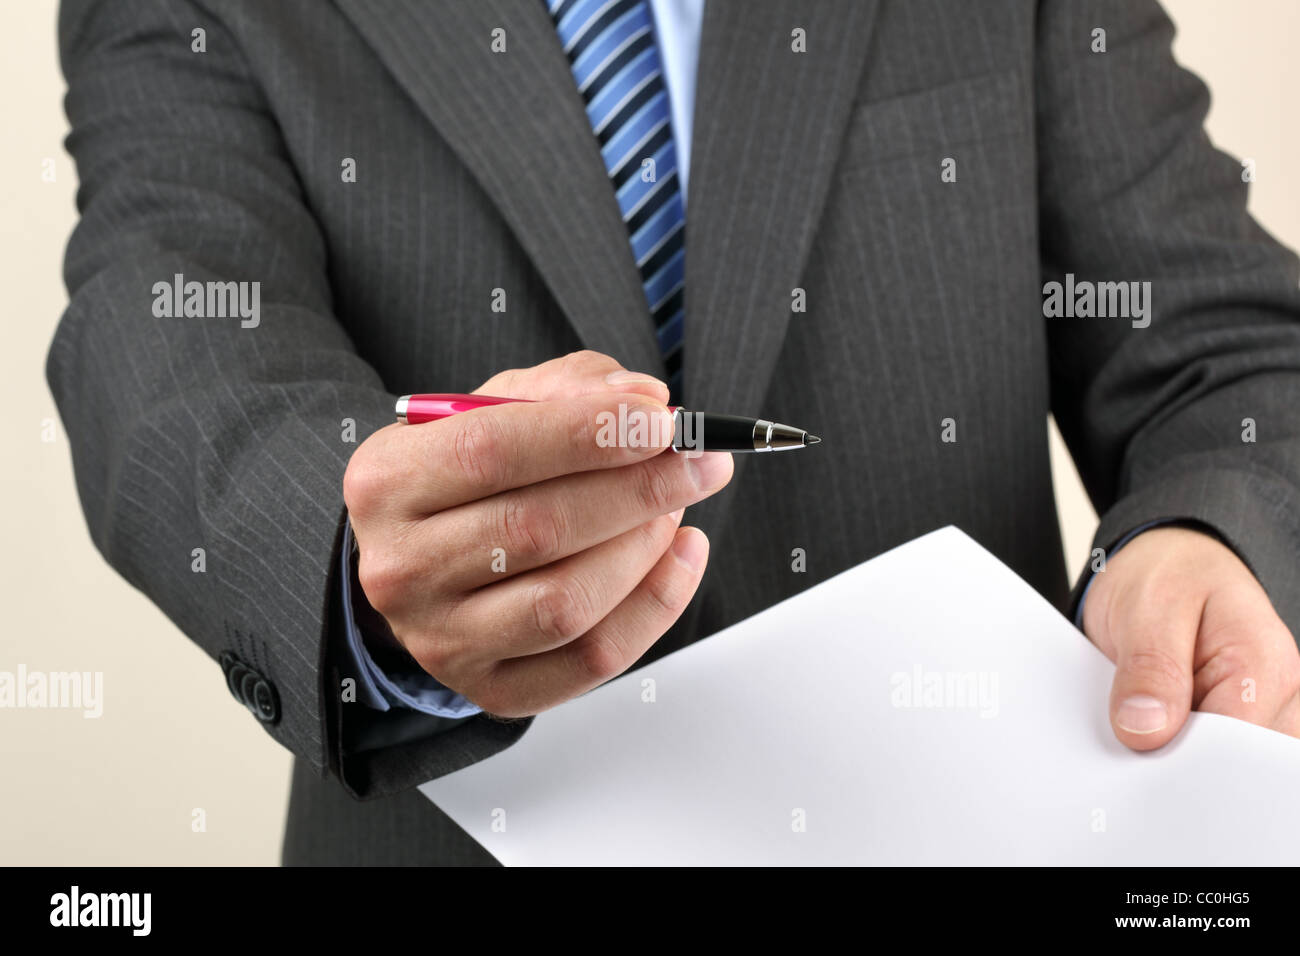 Please sign here - Stock Image